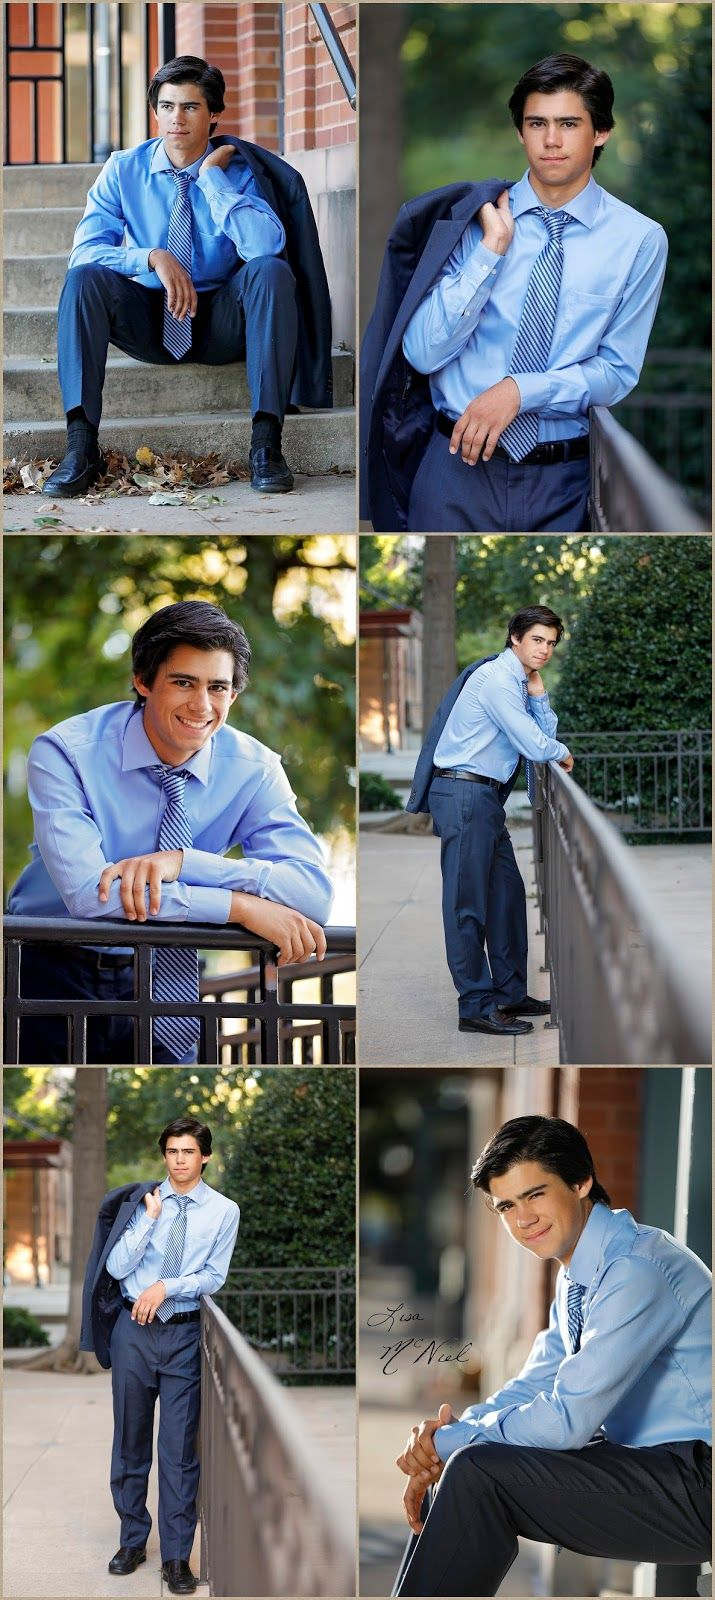 Senior Pictures of a Drummer - by Flower Mound Photographer Lisa McNiel